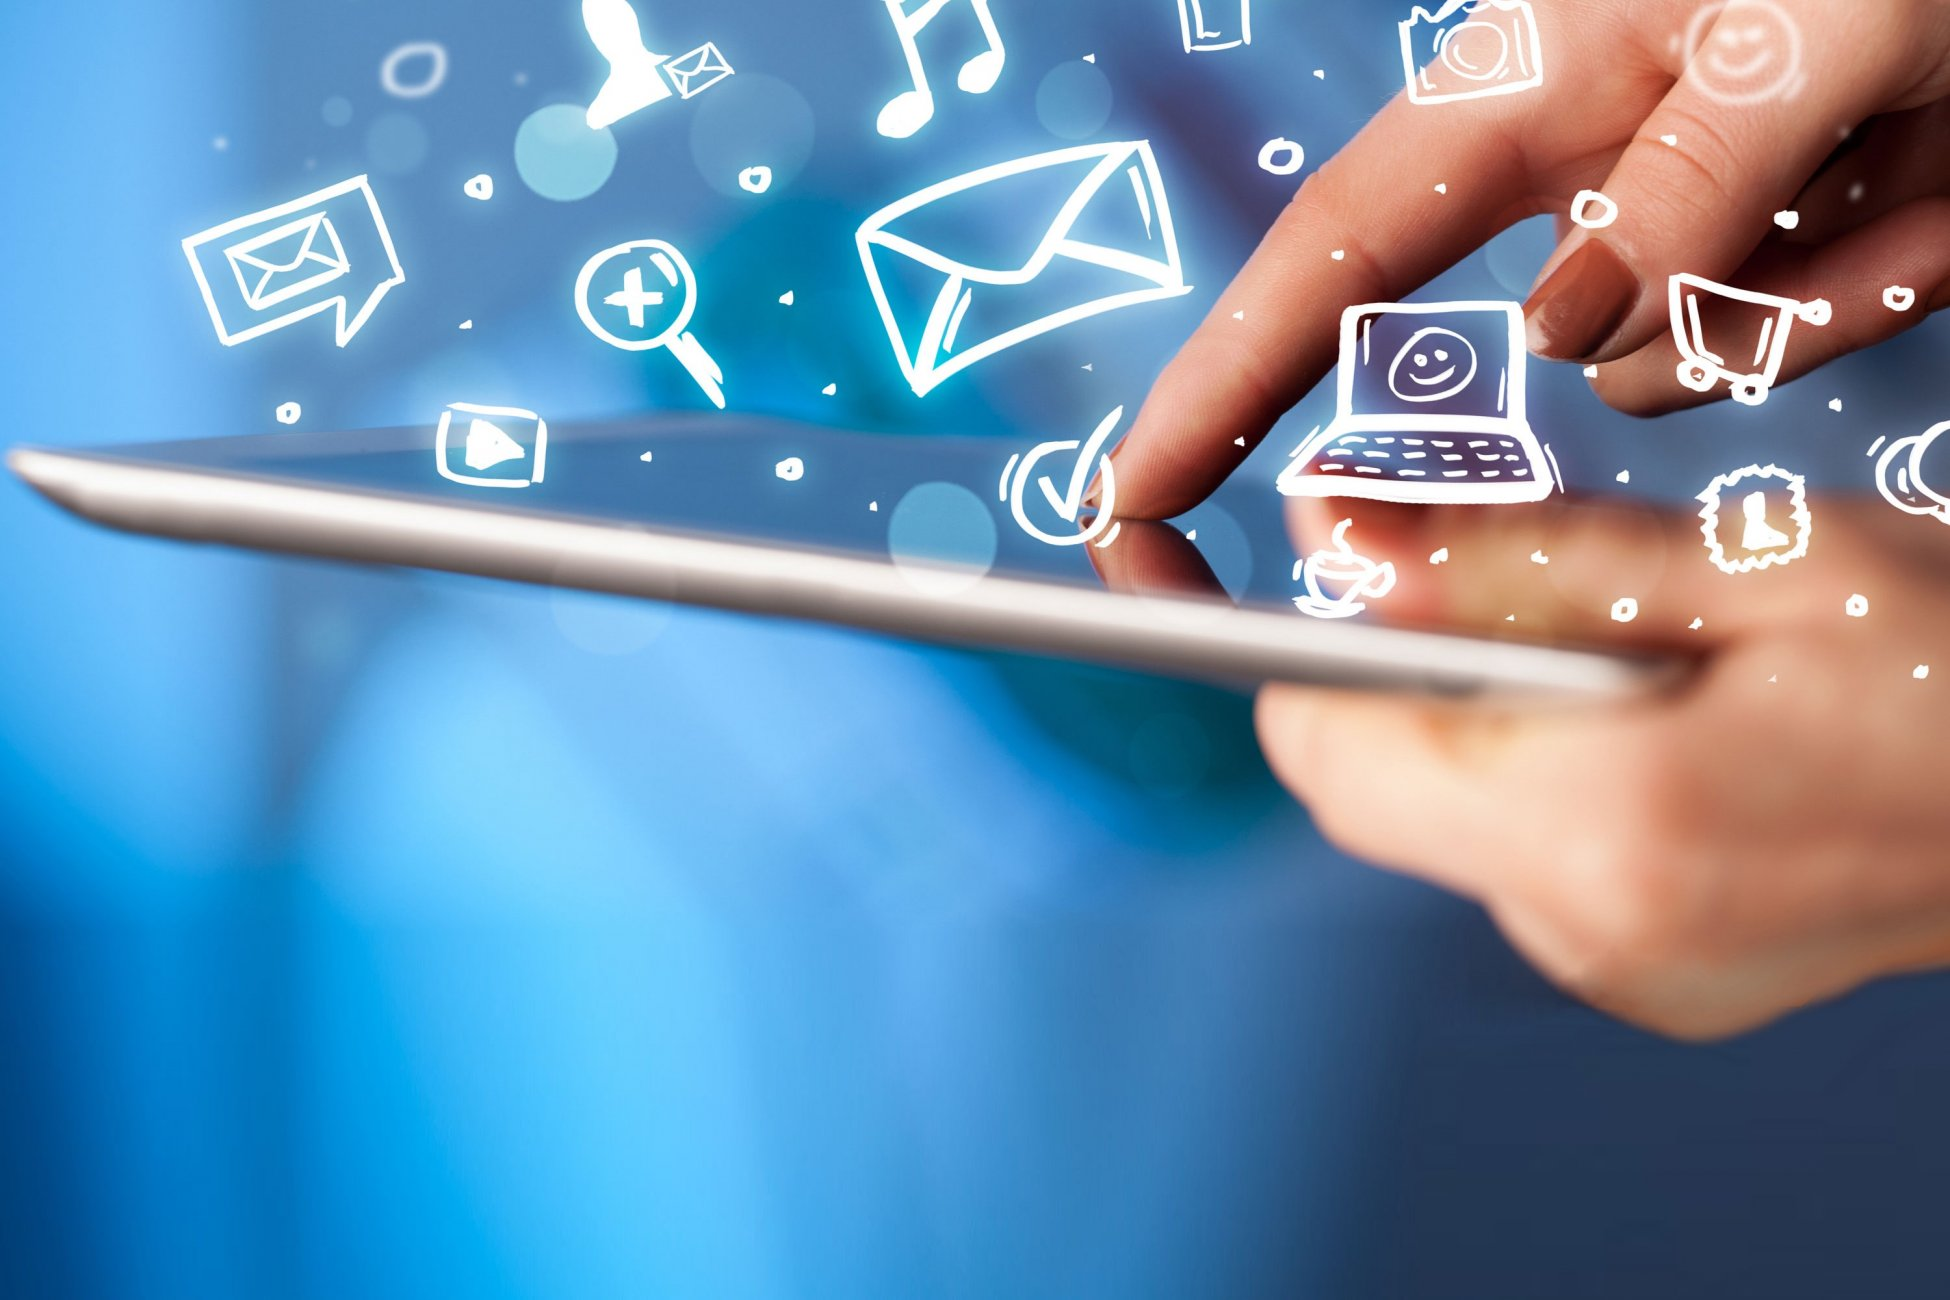 internet technology marketing and security